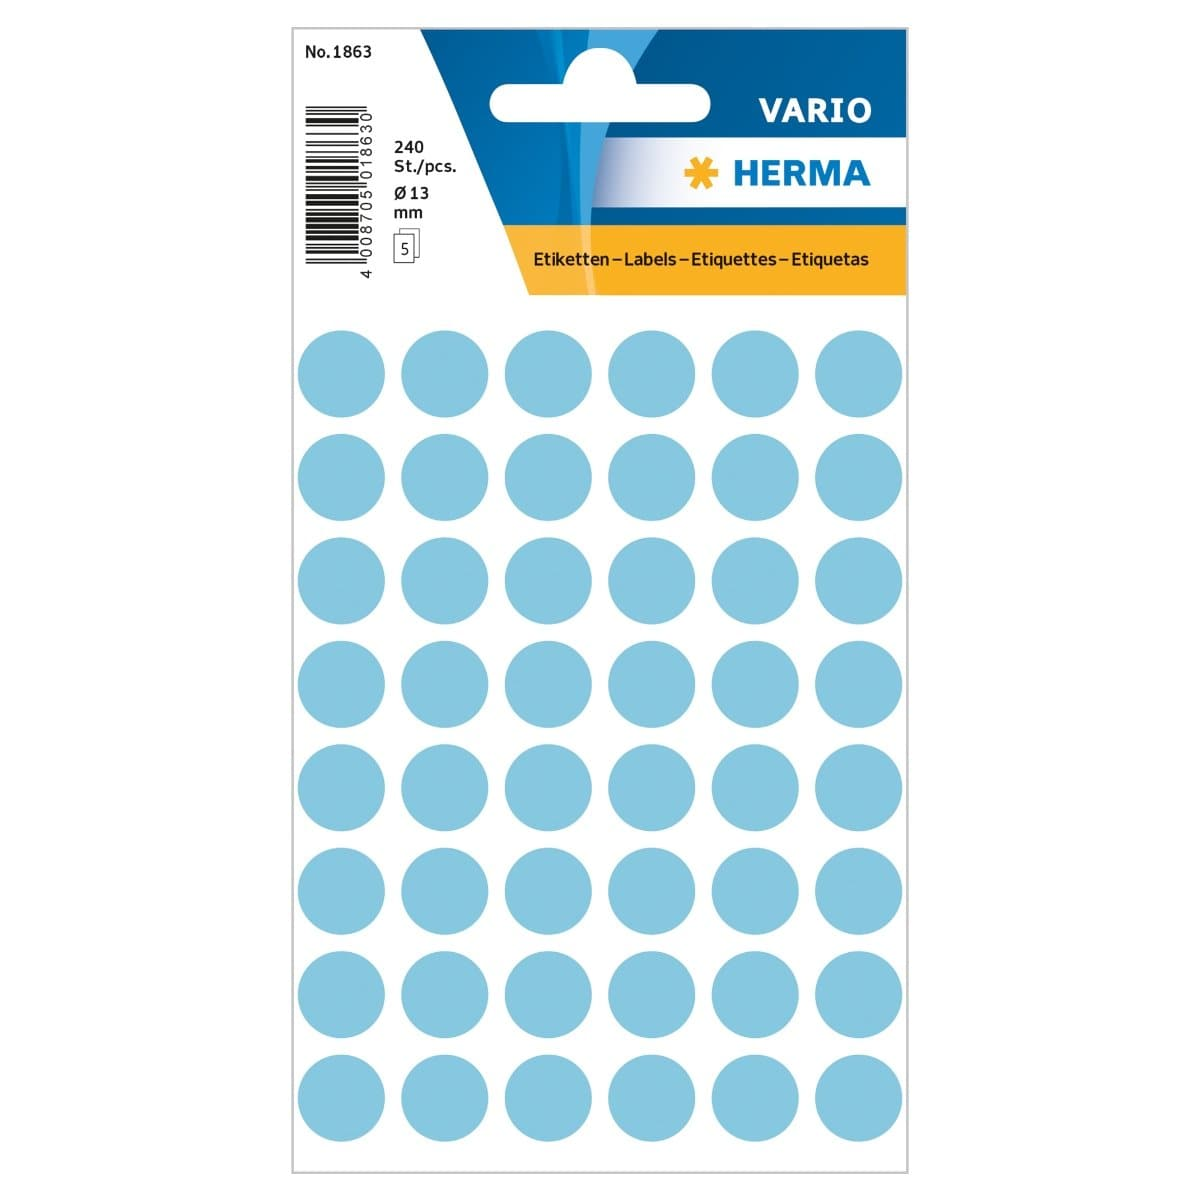 Herma Vario Sticker Color Dots, 13 mm, 240/pack, Blue